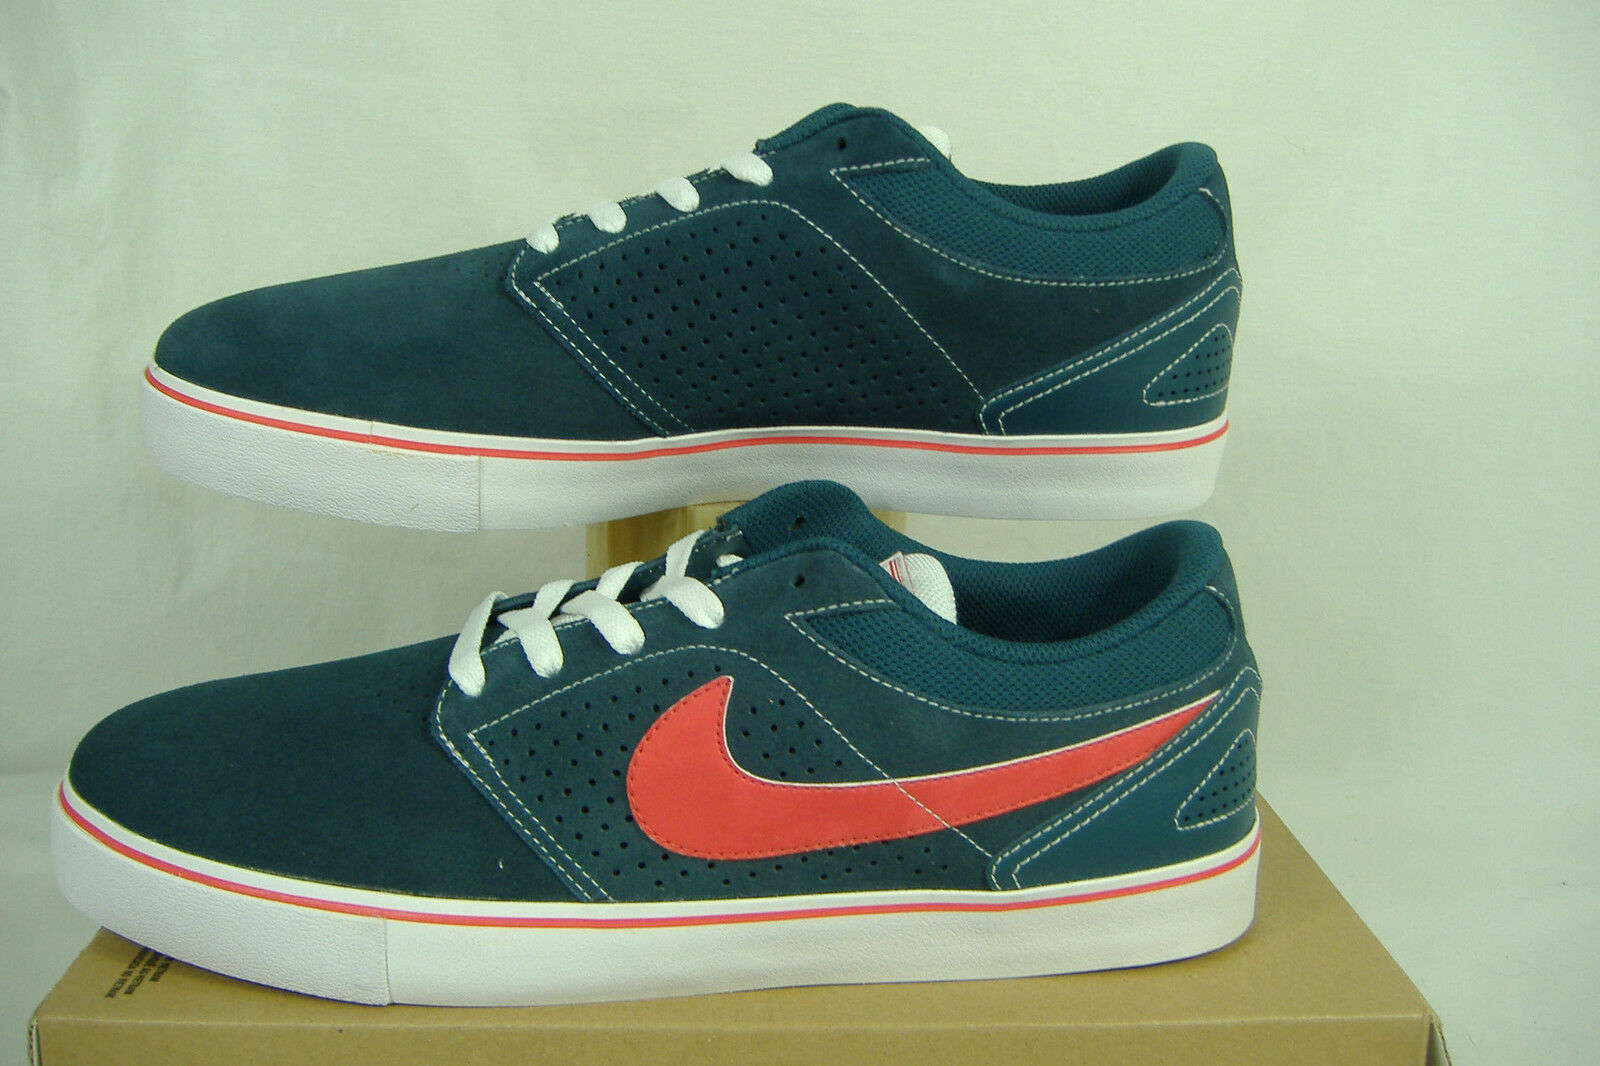 New Mens 13 NIKE Paul Rodriguez 5 LR Squadron bluee Suede shoes  510580-461